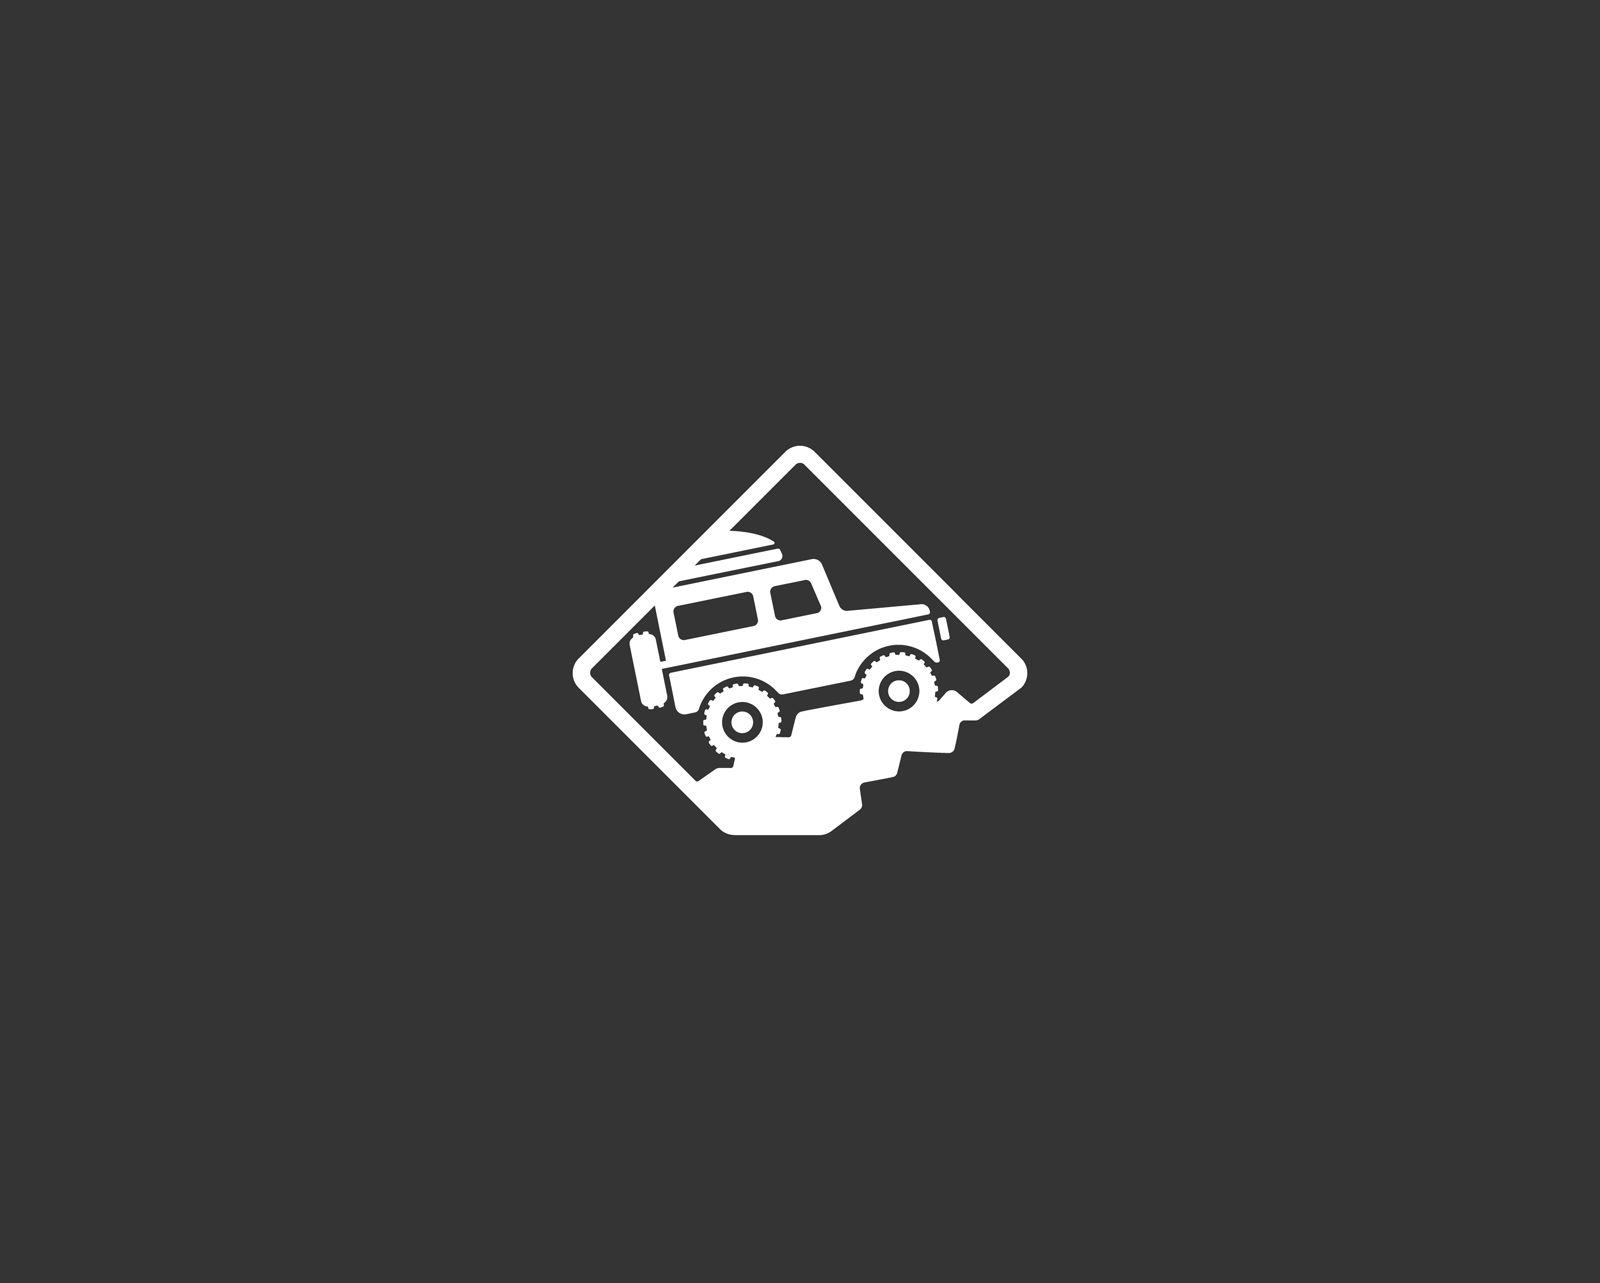 park-city-four-wheel-drive-bwlogo.png